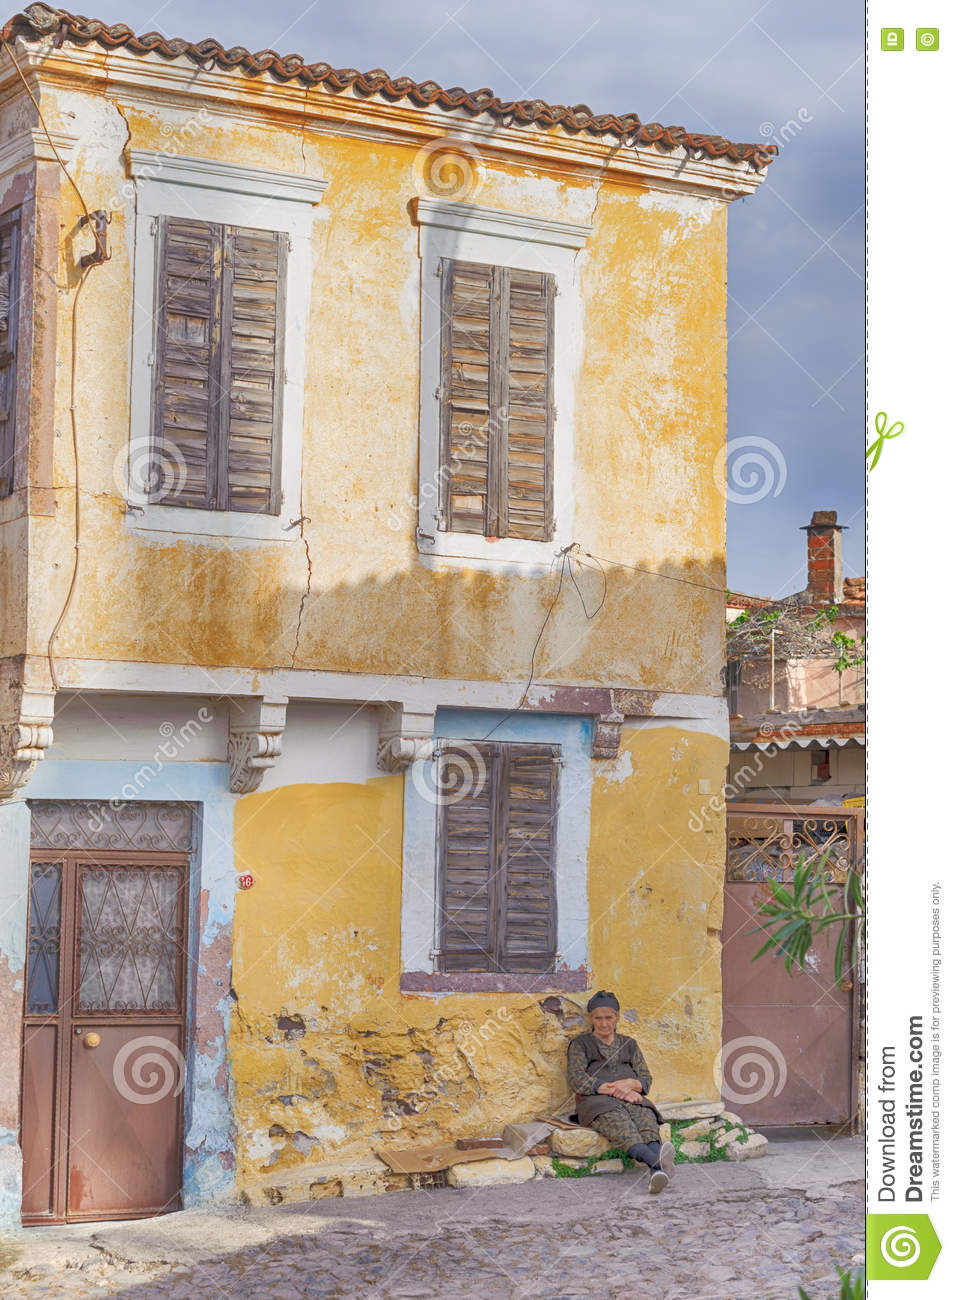 Greek Style House an old greek style house in cunda alibey island. it is a small